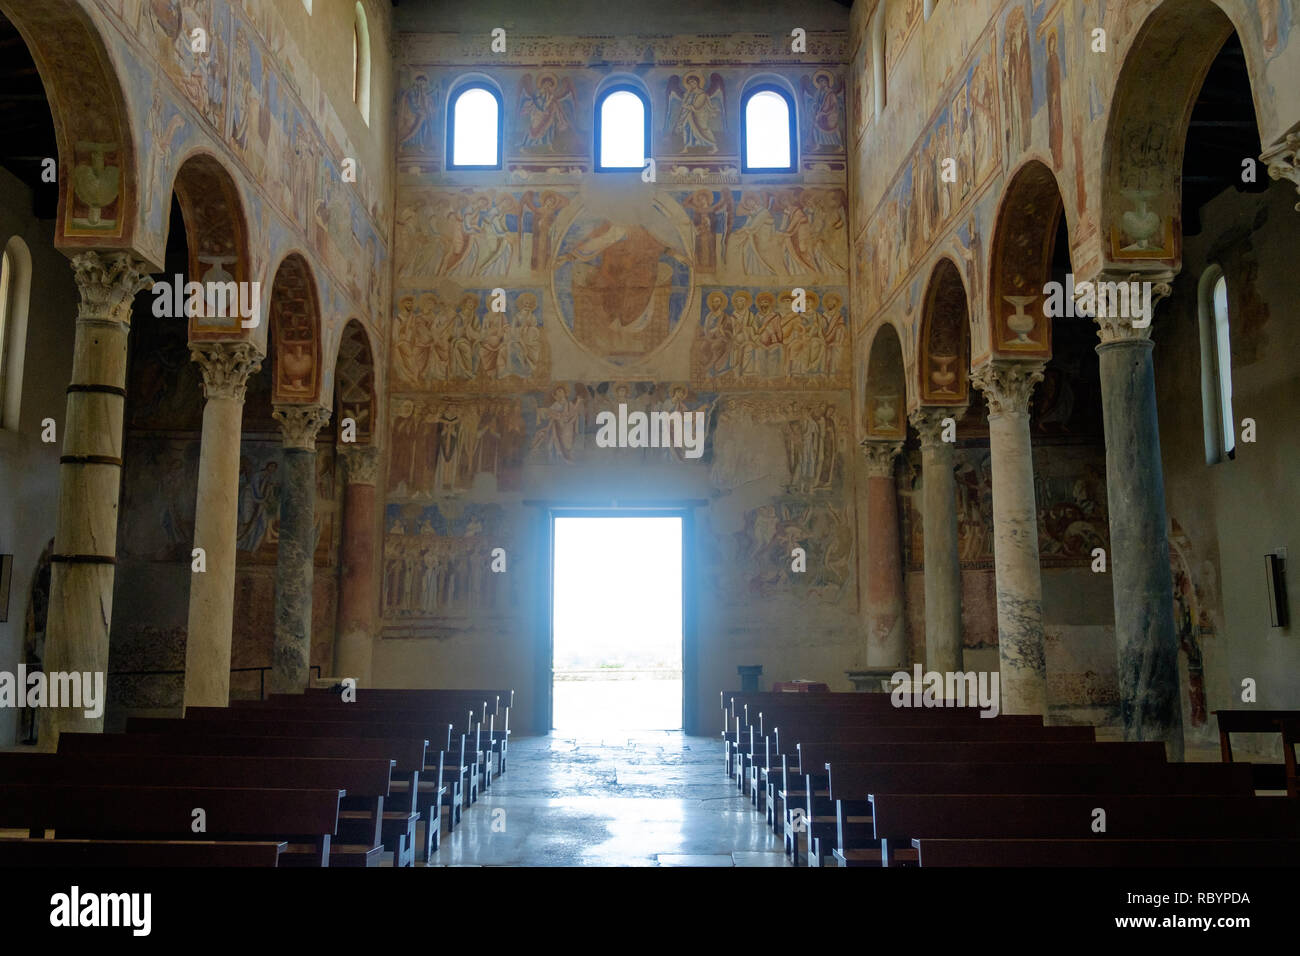 The basilica of 'Sant'Angelo in Formis' is of particular historical value. When looking outside, you get this impressive view with valuable frescos. Stock Photo